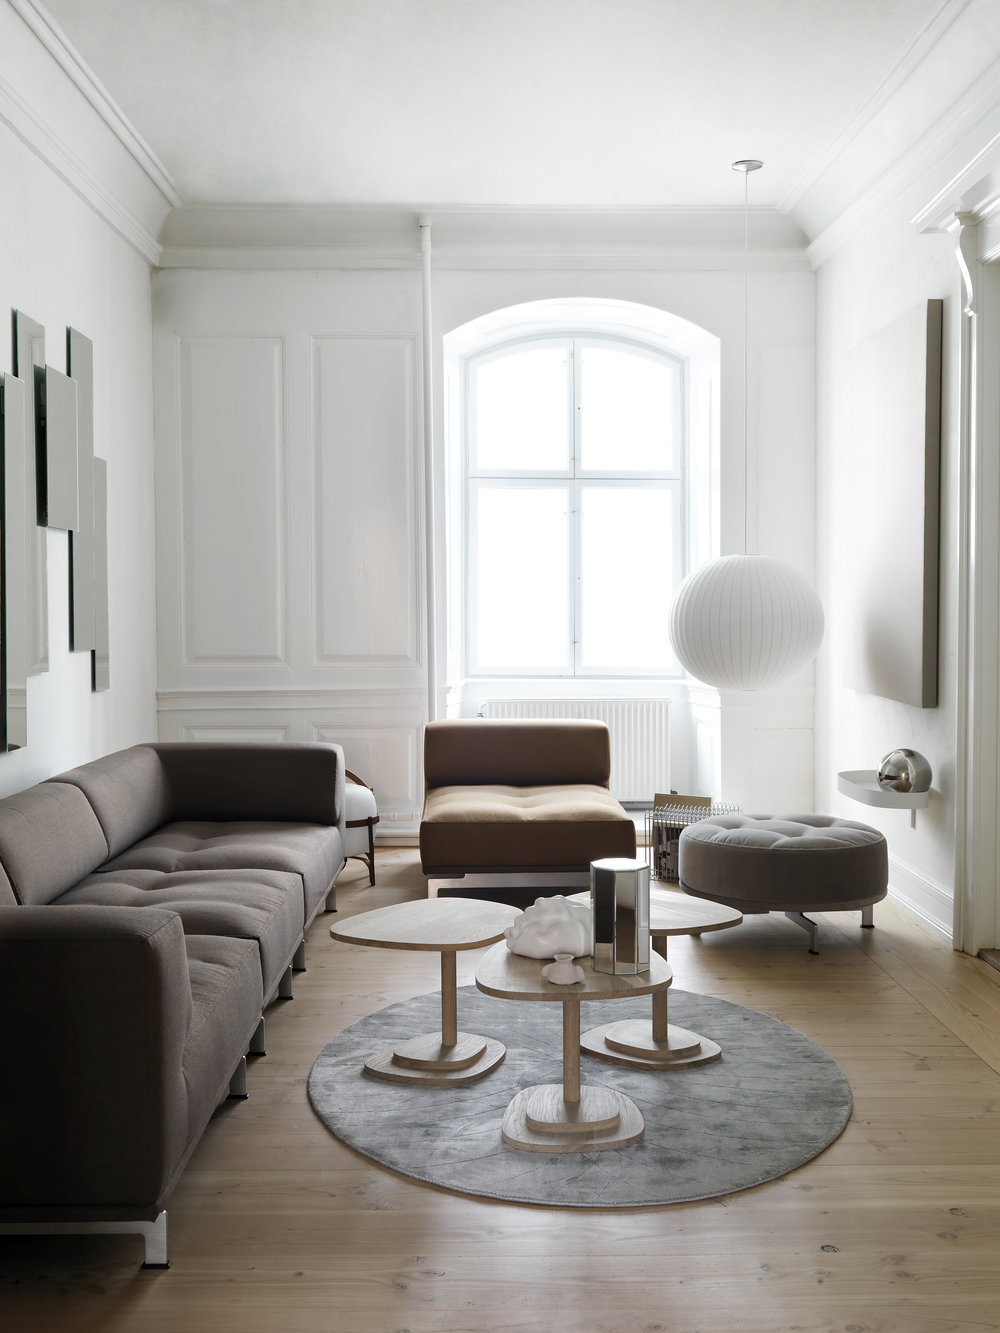 Erik Jørgensen showrrom copenhagen, interiors, scandinavian design, living room, modern furniture 13.jpg